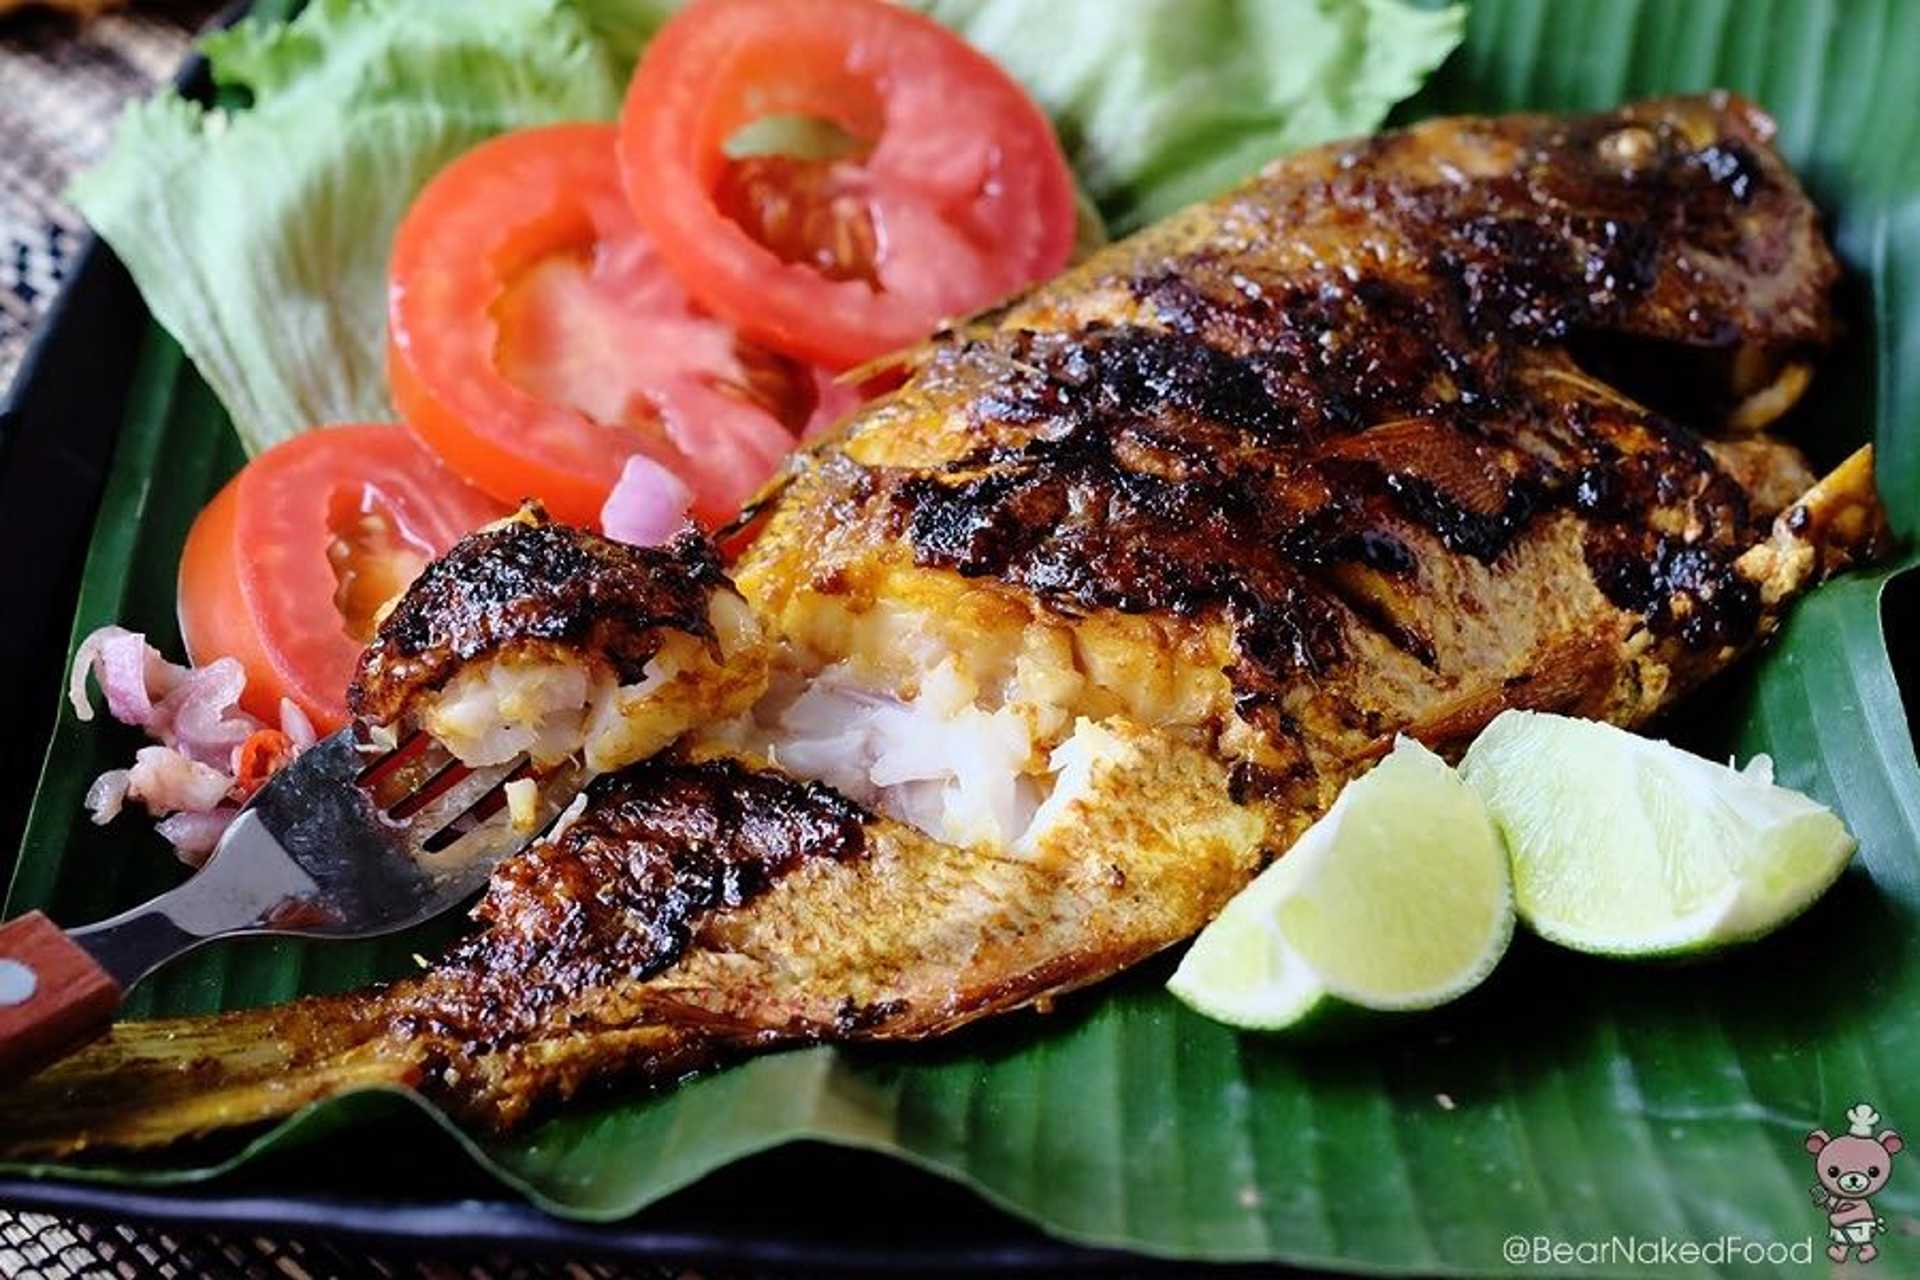 Grilled fish with a side of rice feels heavenly